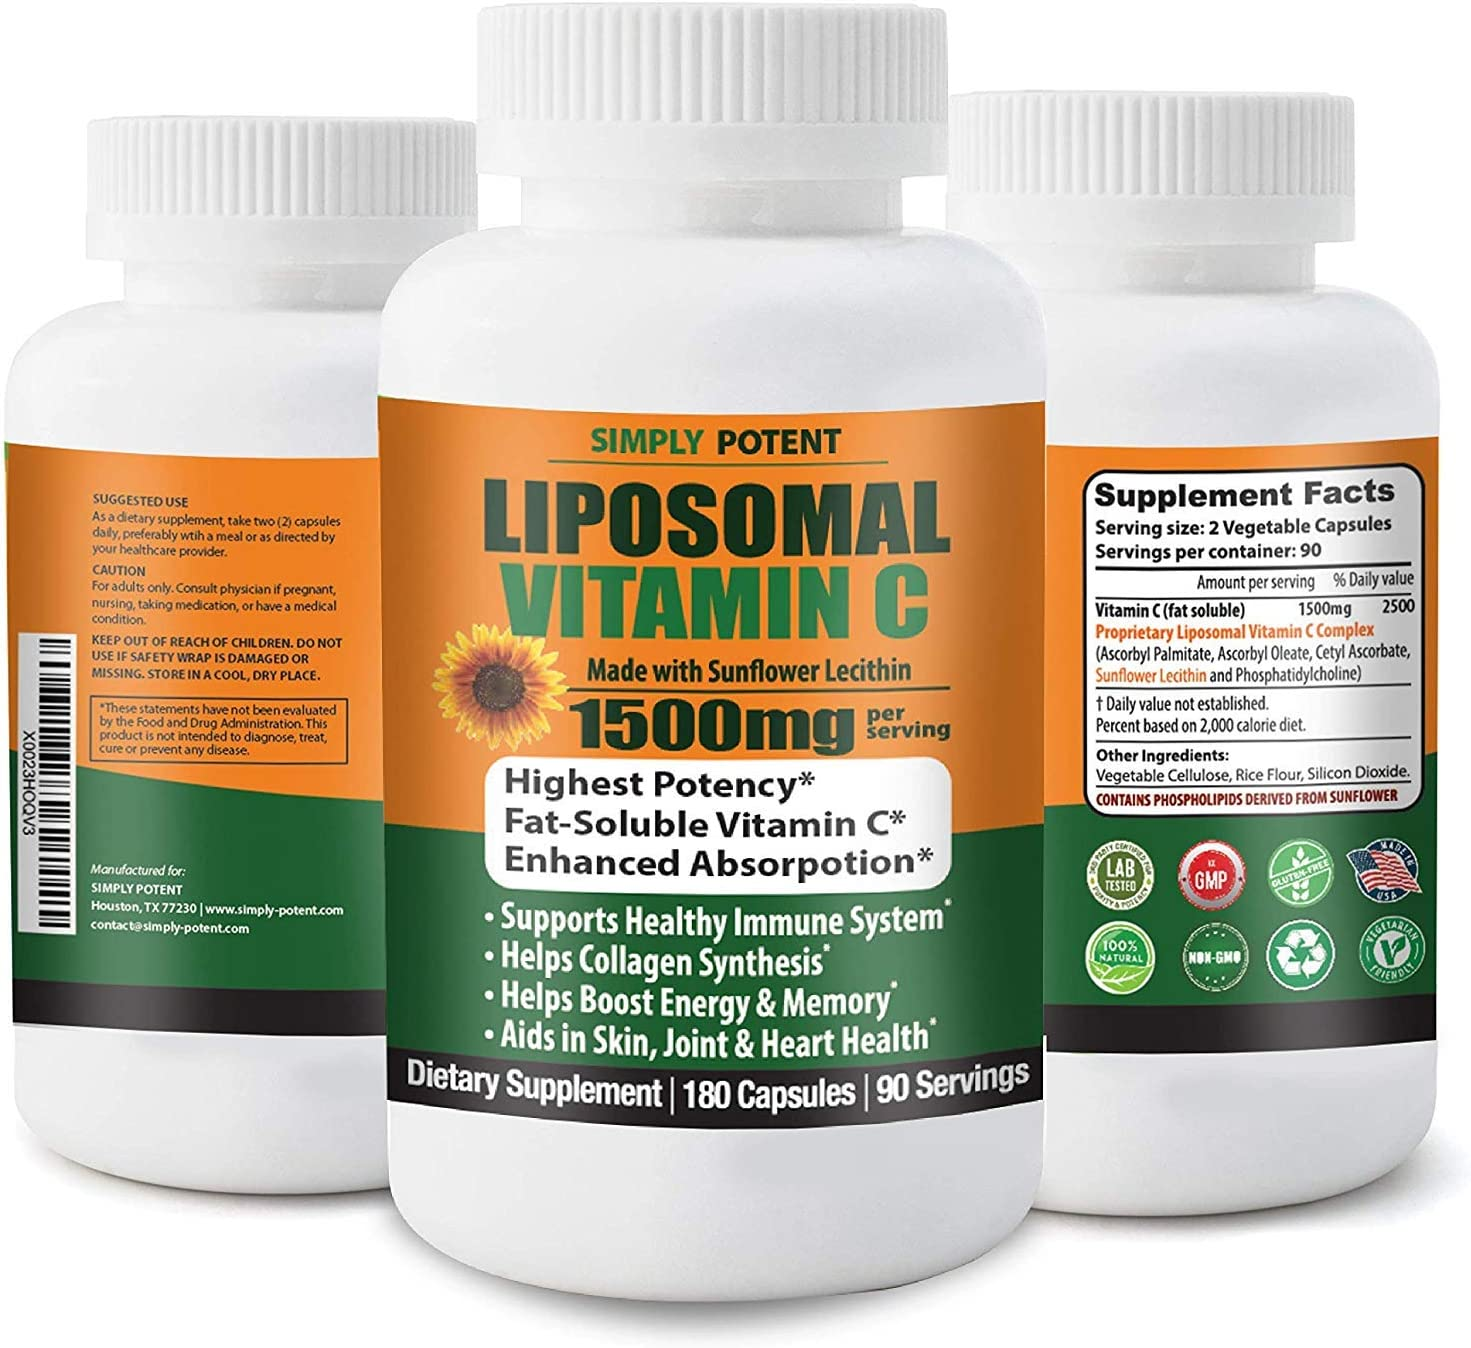 Liposomal Vitamin C 1500mg 180 Capsule 90 Serving Non-GMO Vitamin C Natural Vegan High Absorption & Bioavailable Vitamin C High Dose Fat Soluble Antioxidant for Immune System, Collagen, Skin & Heart